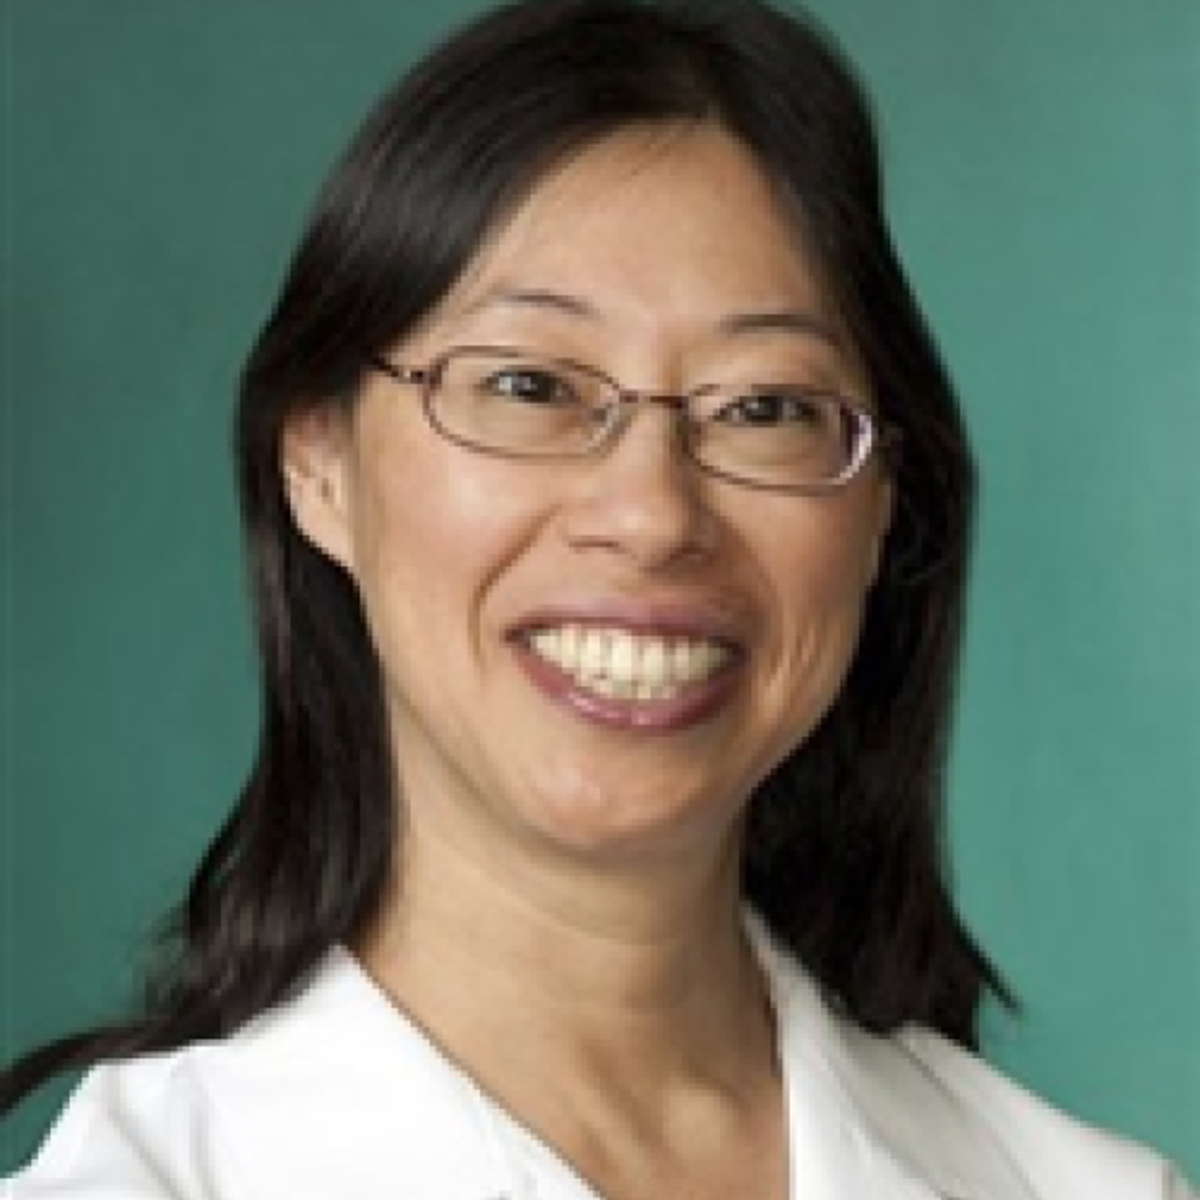 Health: Diana Chen MD, Utica Park Clinic - Hillcrest South